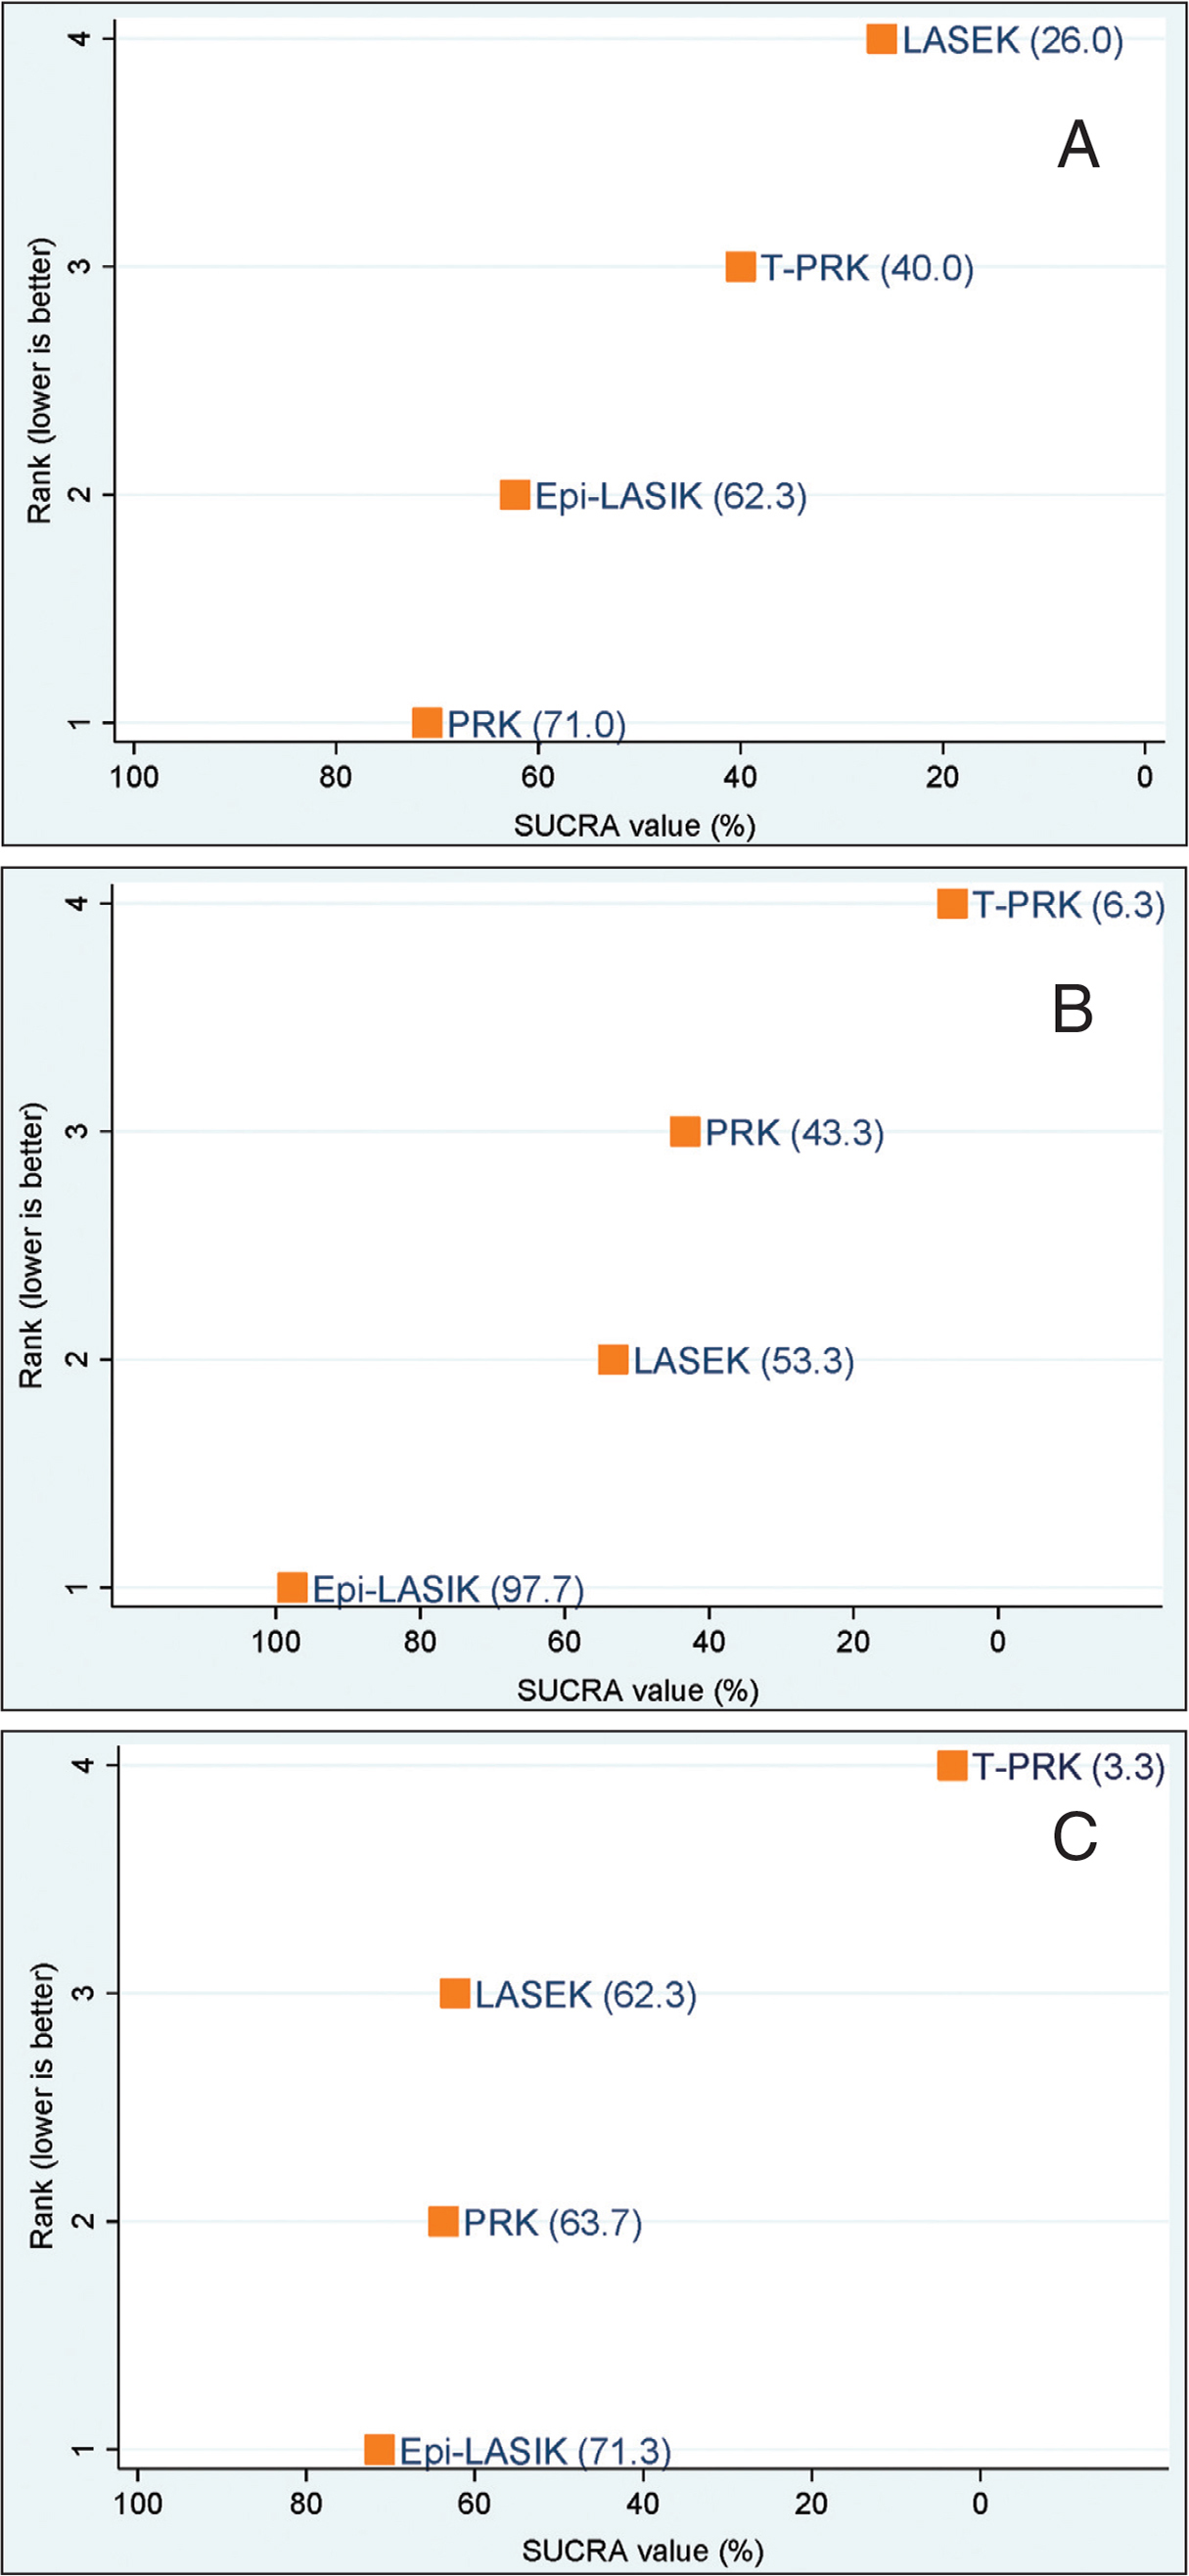 Ranking plot of procedures based on surface under the cumulative ranking curve (SUCRA) values for postoperative pain scores on (A) day 1 and (B) day 3 and (C) epithelial healing time. epi-LASIK = epithelial laser in situ keratomileusis; LASEK = laser epithelial keratomileusis; PRK = photorefractive keratectomy; T-PRK = transepithelial photorefractive keratectomy